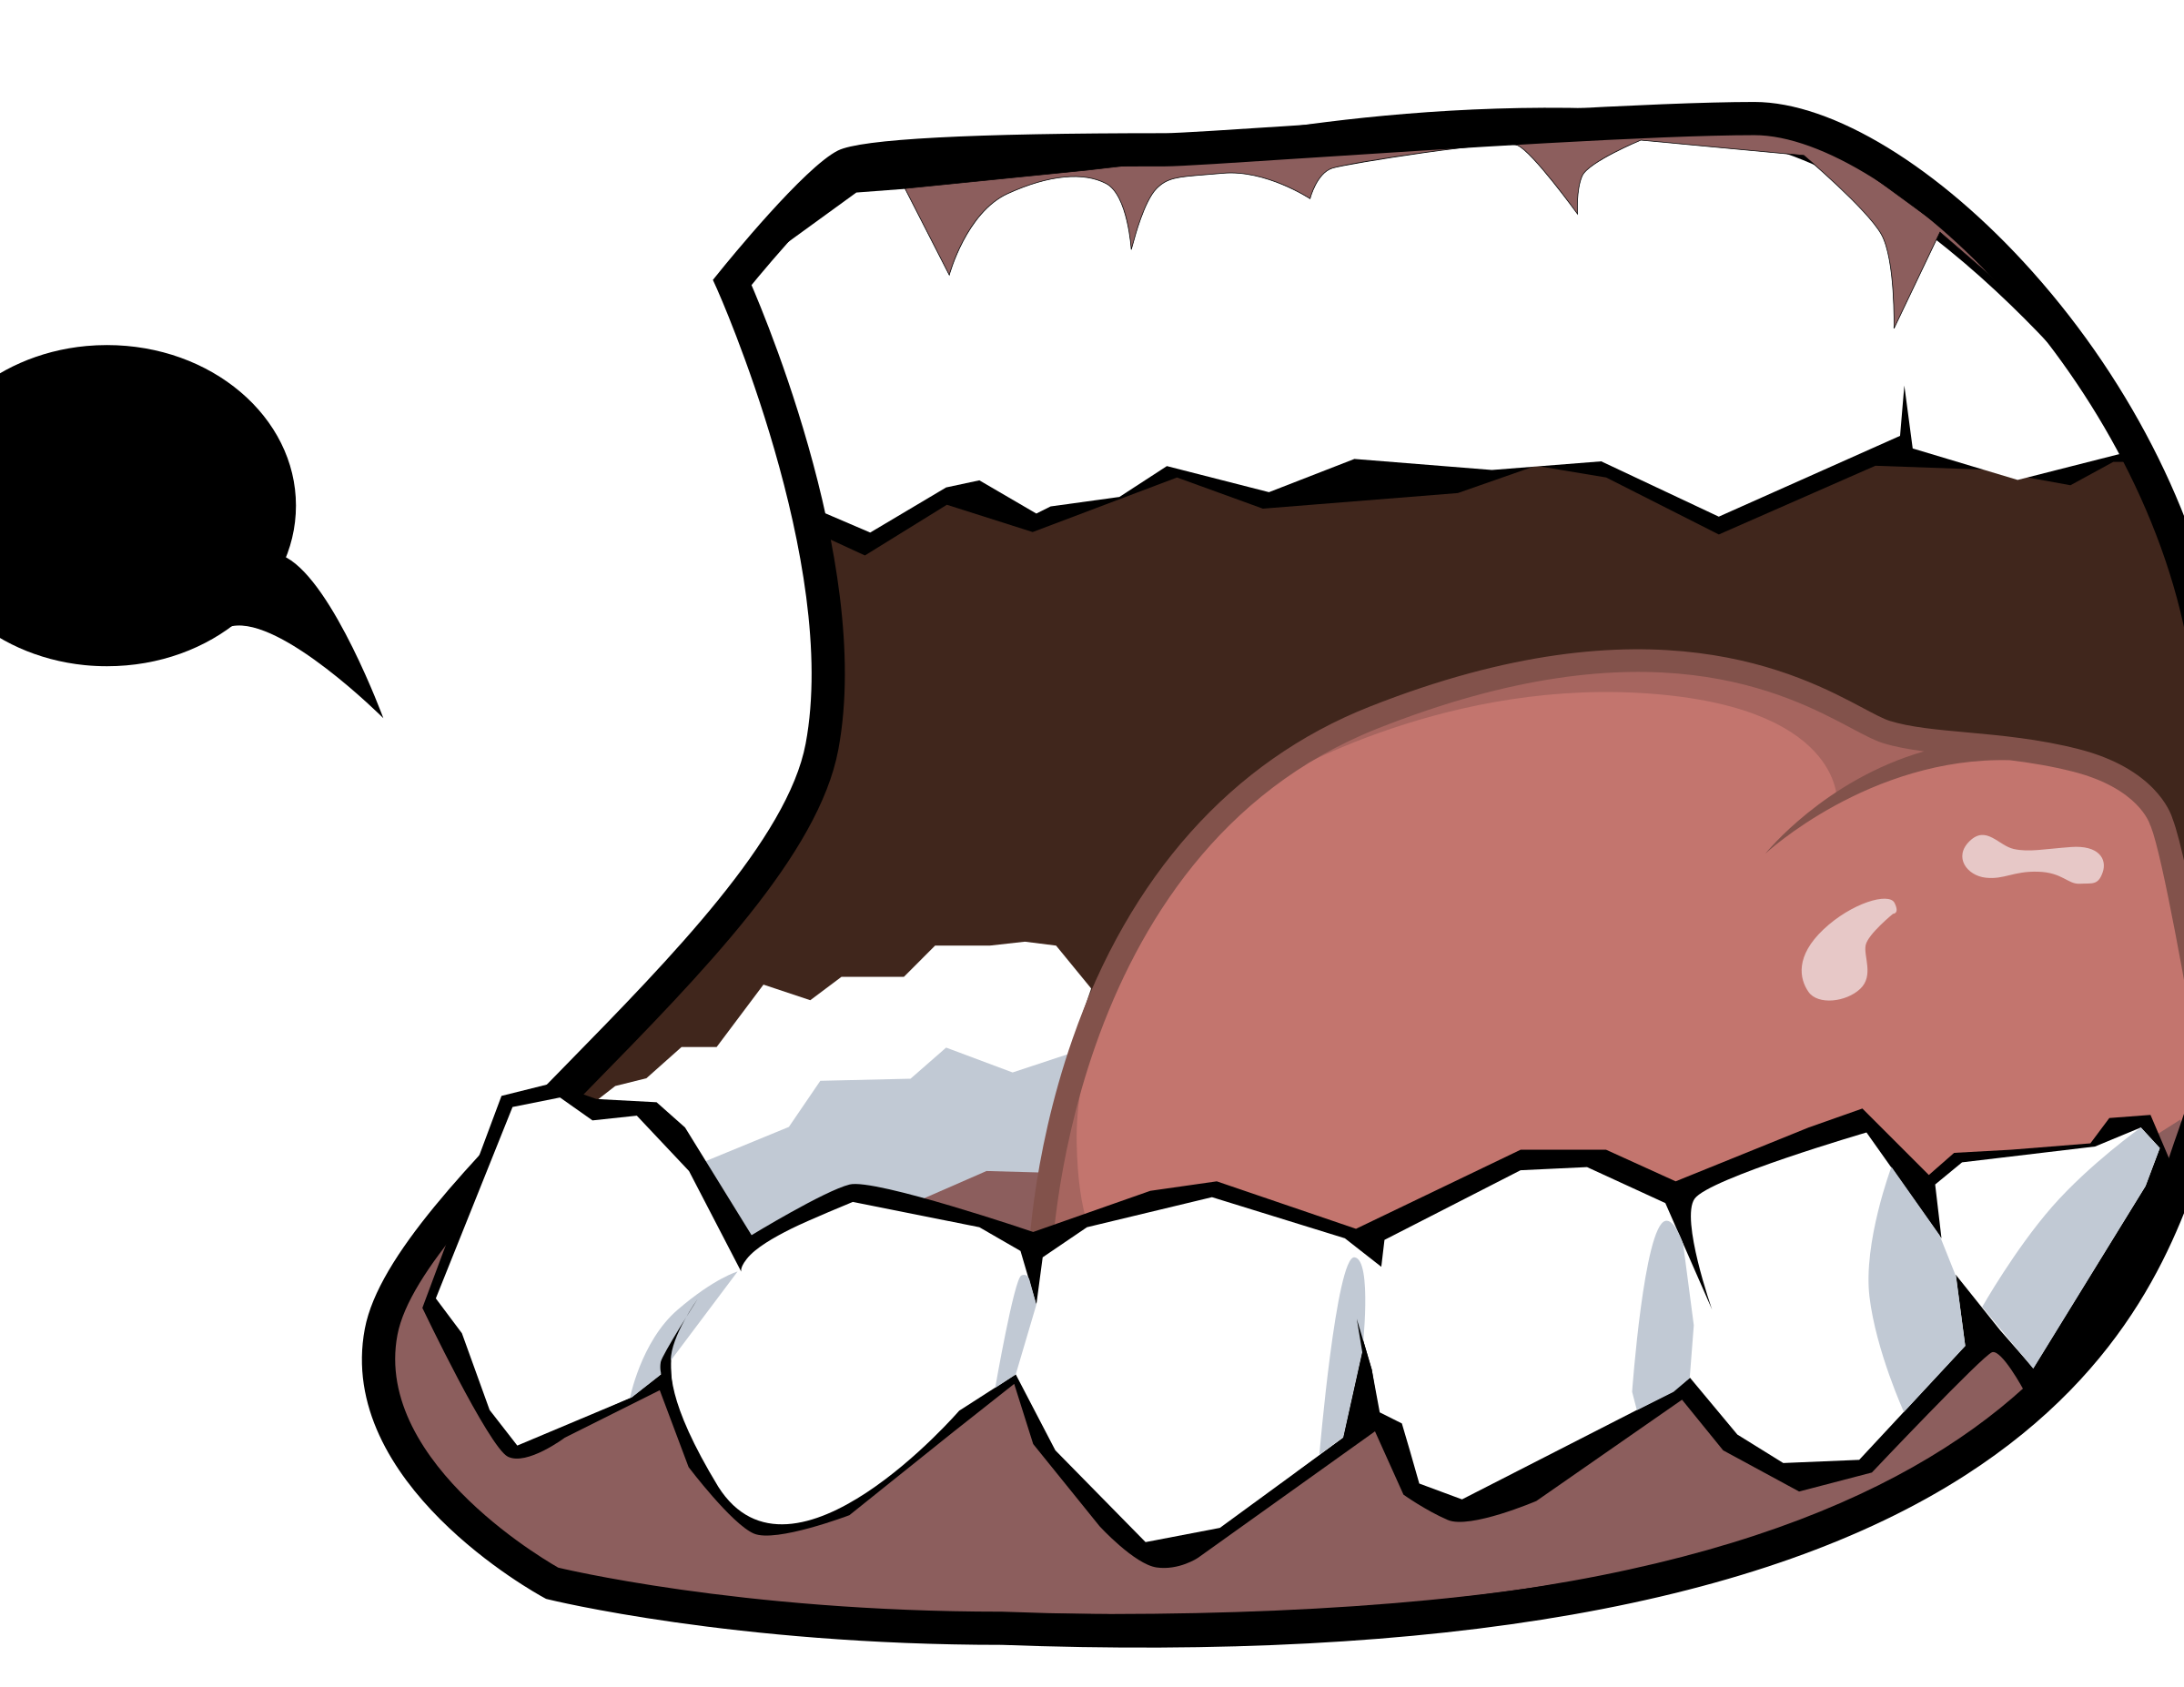 Talk clipart mouth. Dark big image png